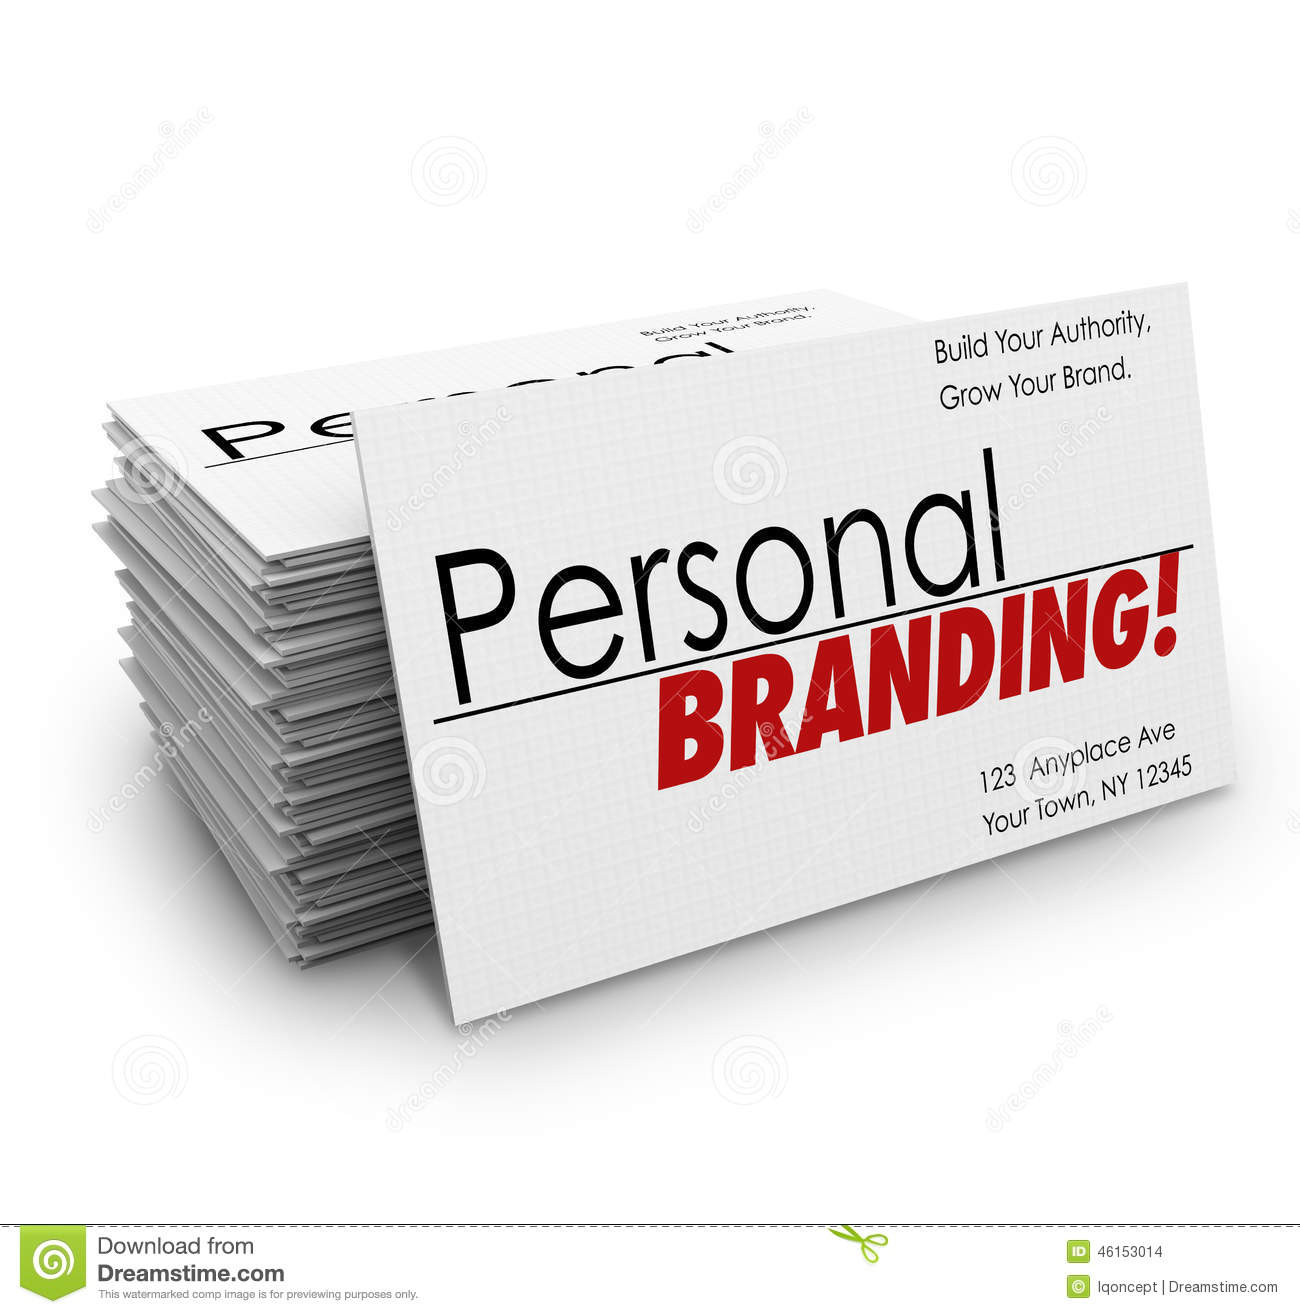 Personal Branding Business Cards Advertise Services Company Stock